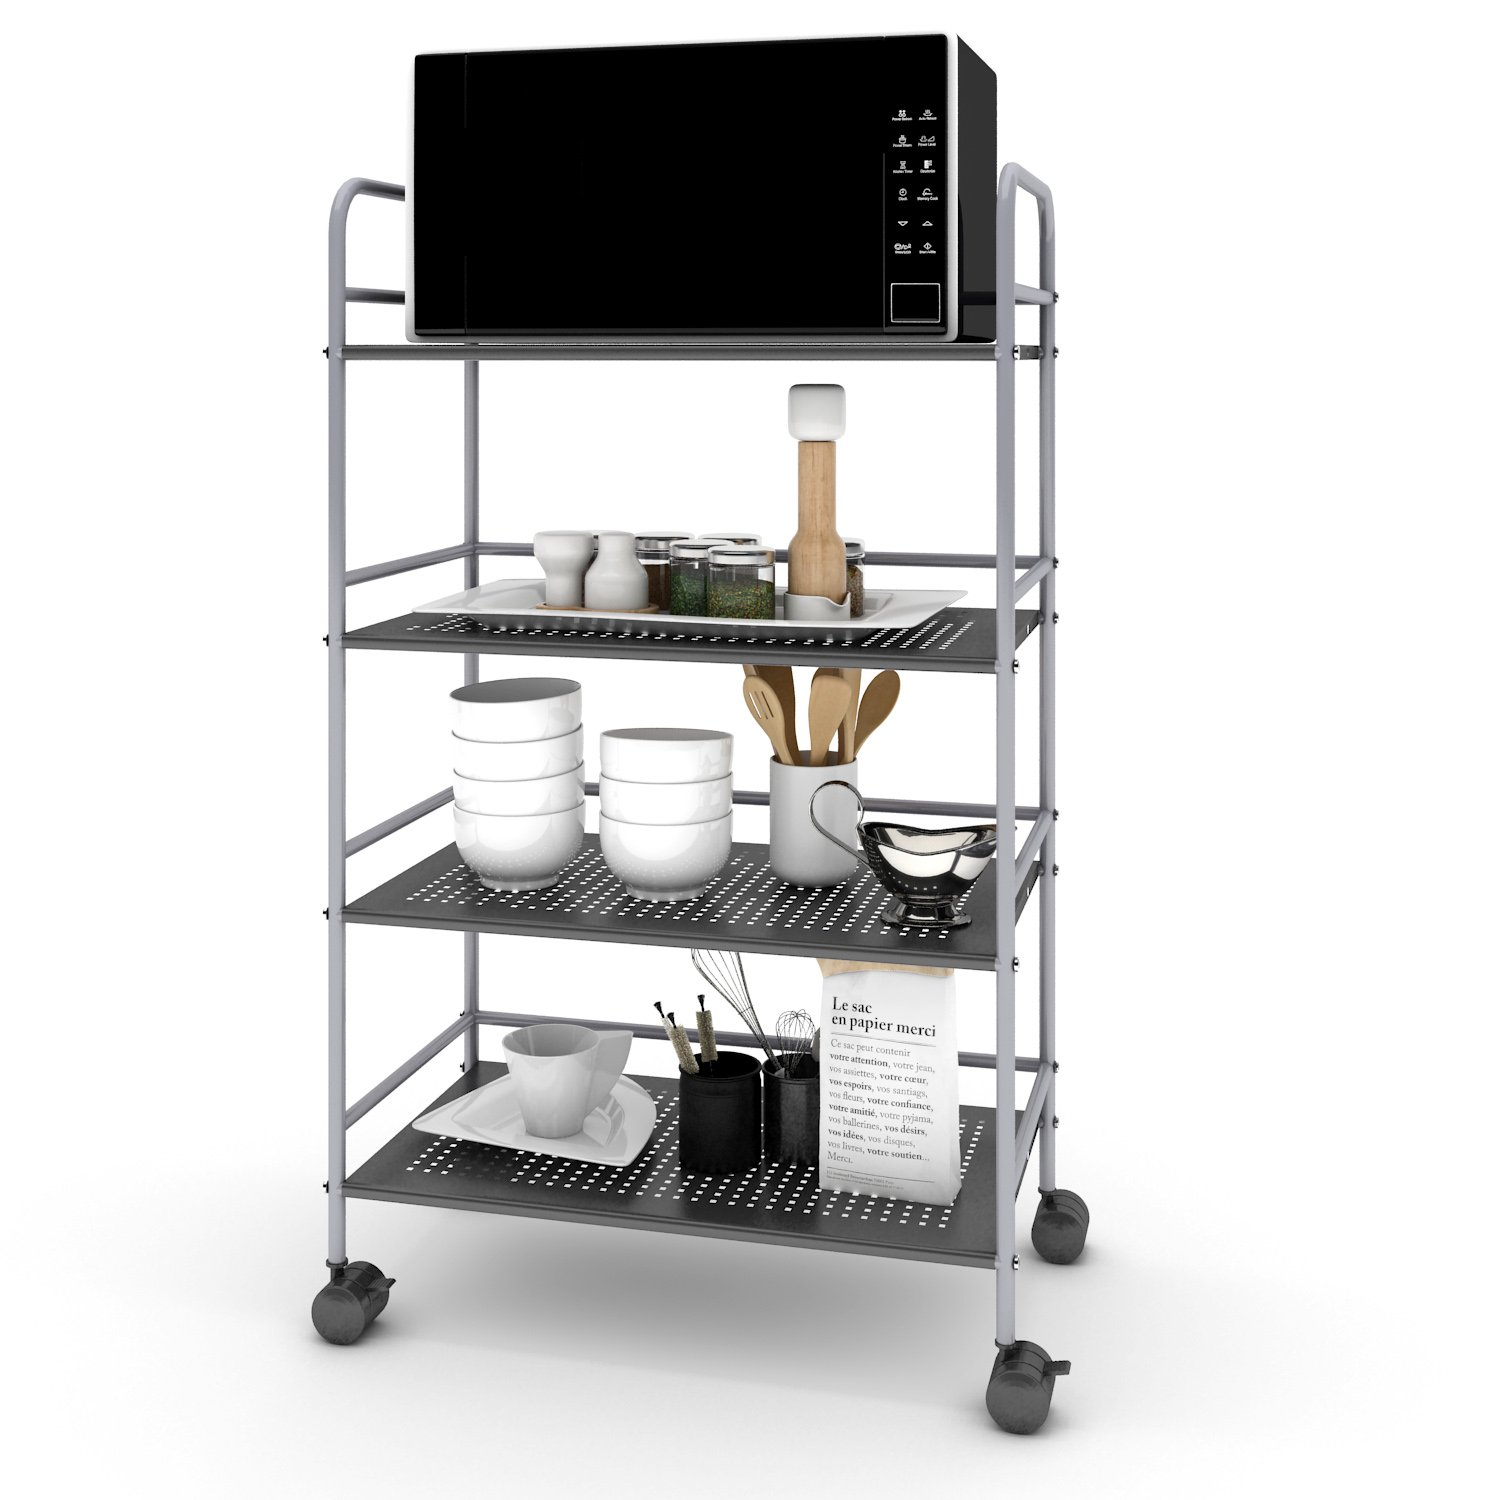 galleon lifewit 4 tier storage rolling cart microwave stand with omnidirectional wheels for. Black Bedroom Furniture Sets. Home Design Ideas